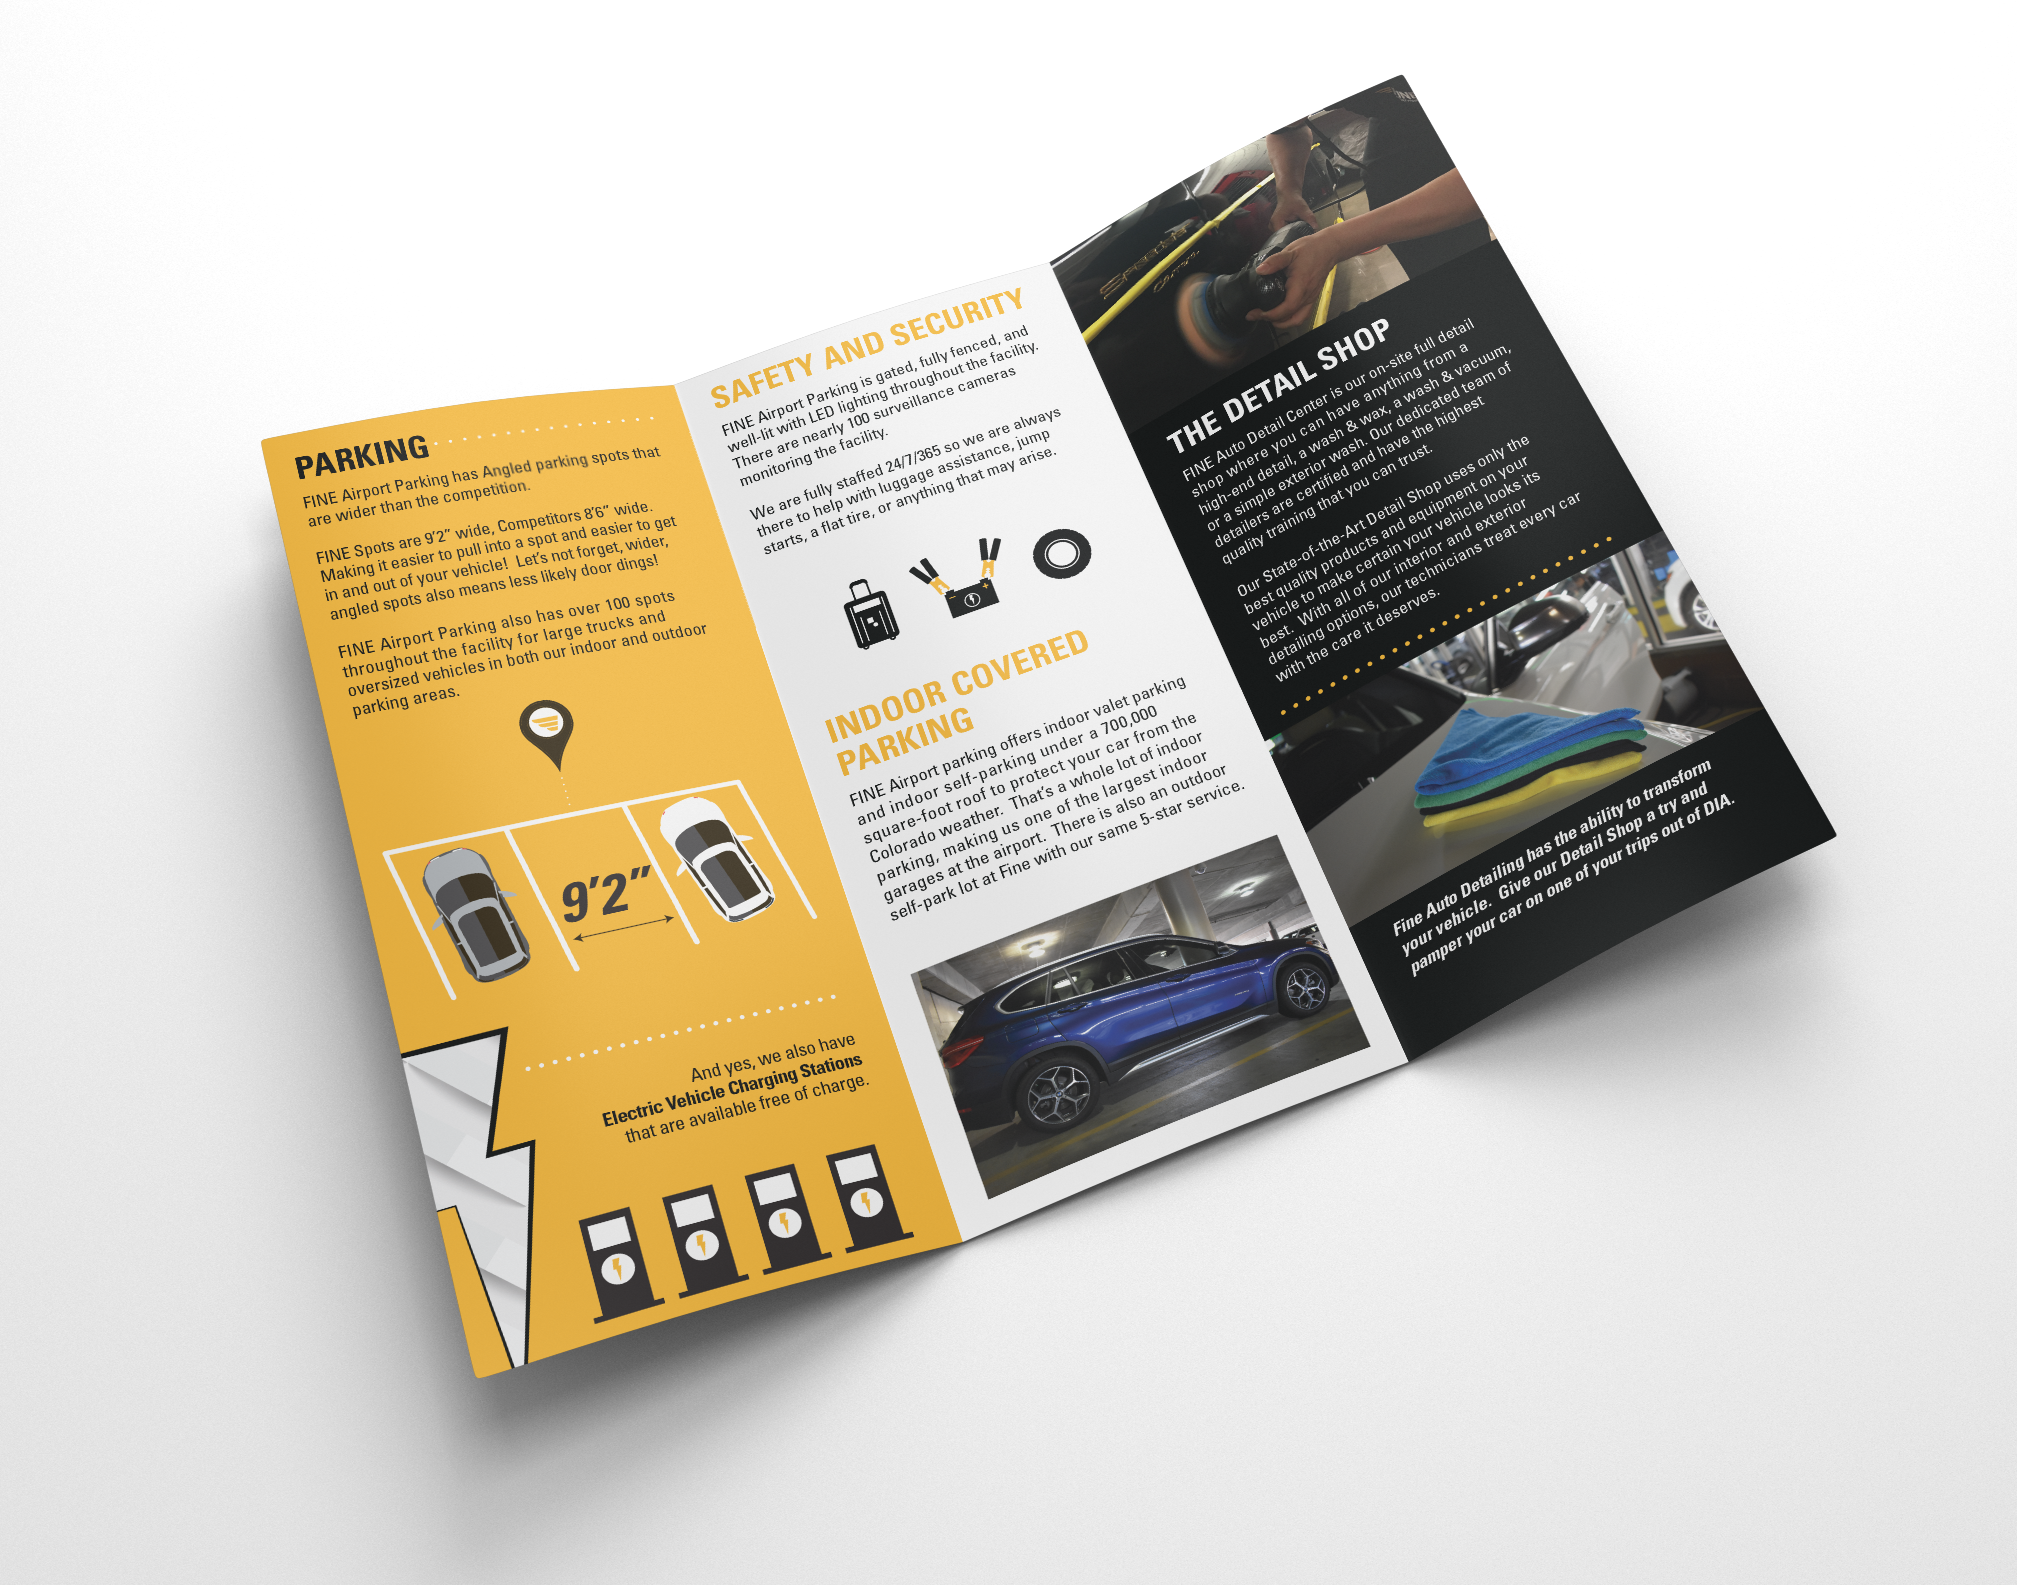 FineAirportParkingg_Brochure_Front.png